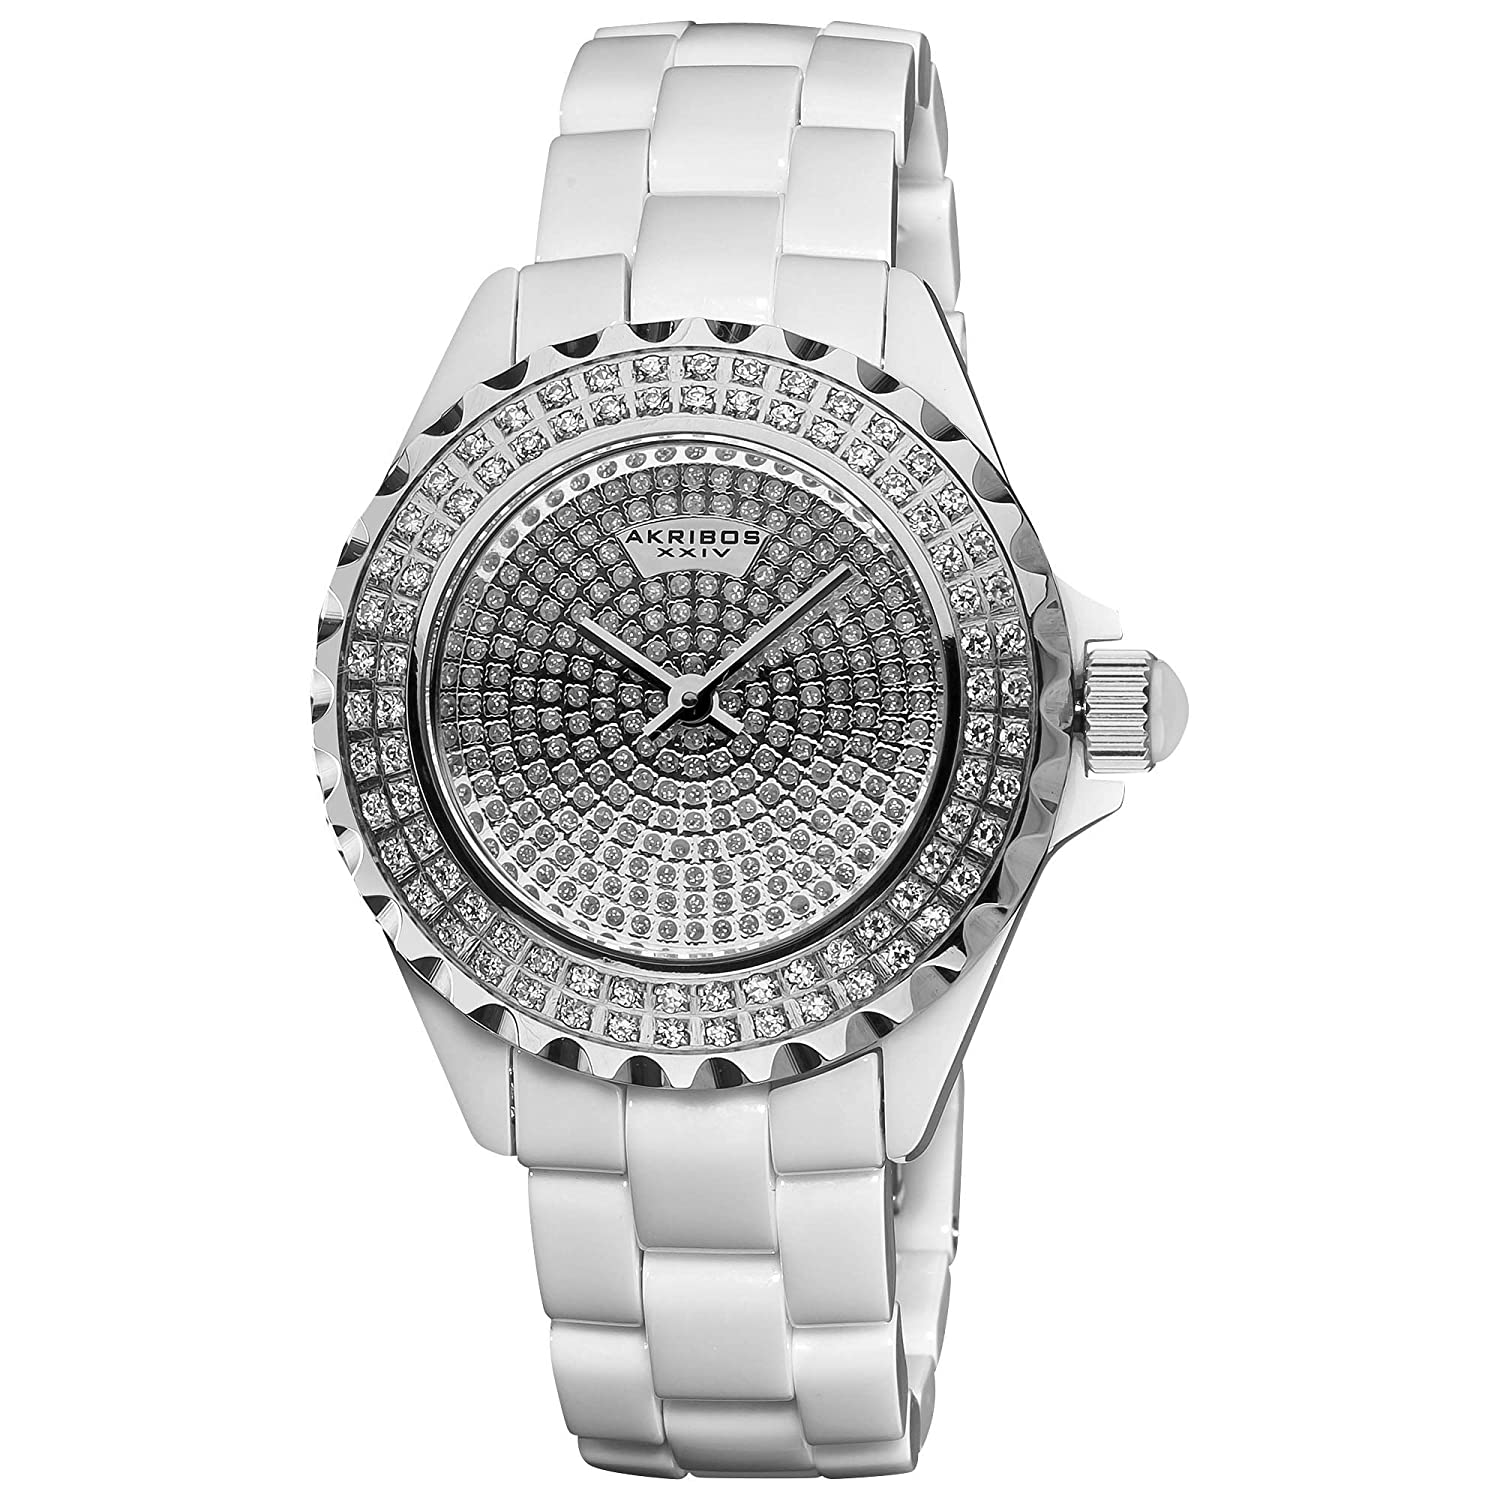 Akribos XXIV Women s Lady Diamond Luxury Watch Collection – Unidirectional Rotating Crystal Filled Bezel and Dial on Ceramic Link Bracelet – AK457